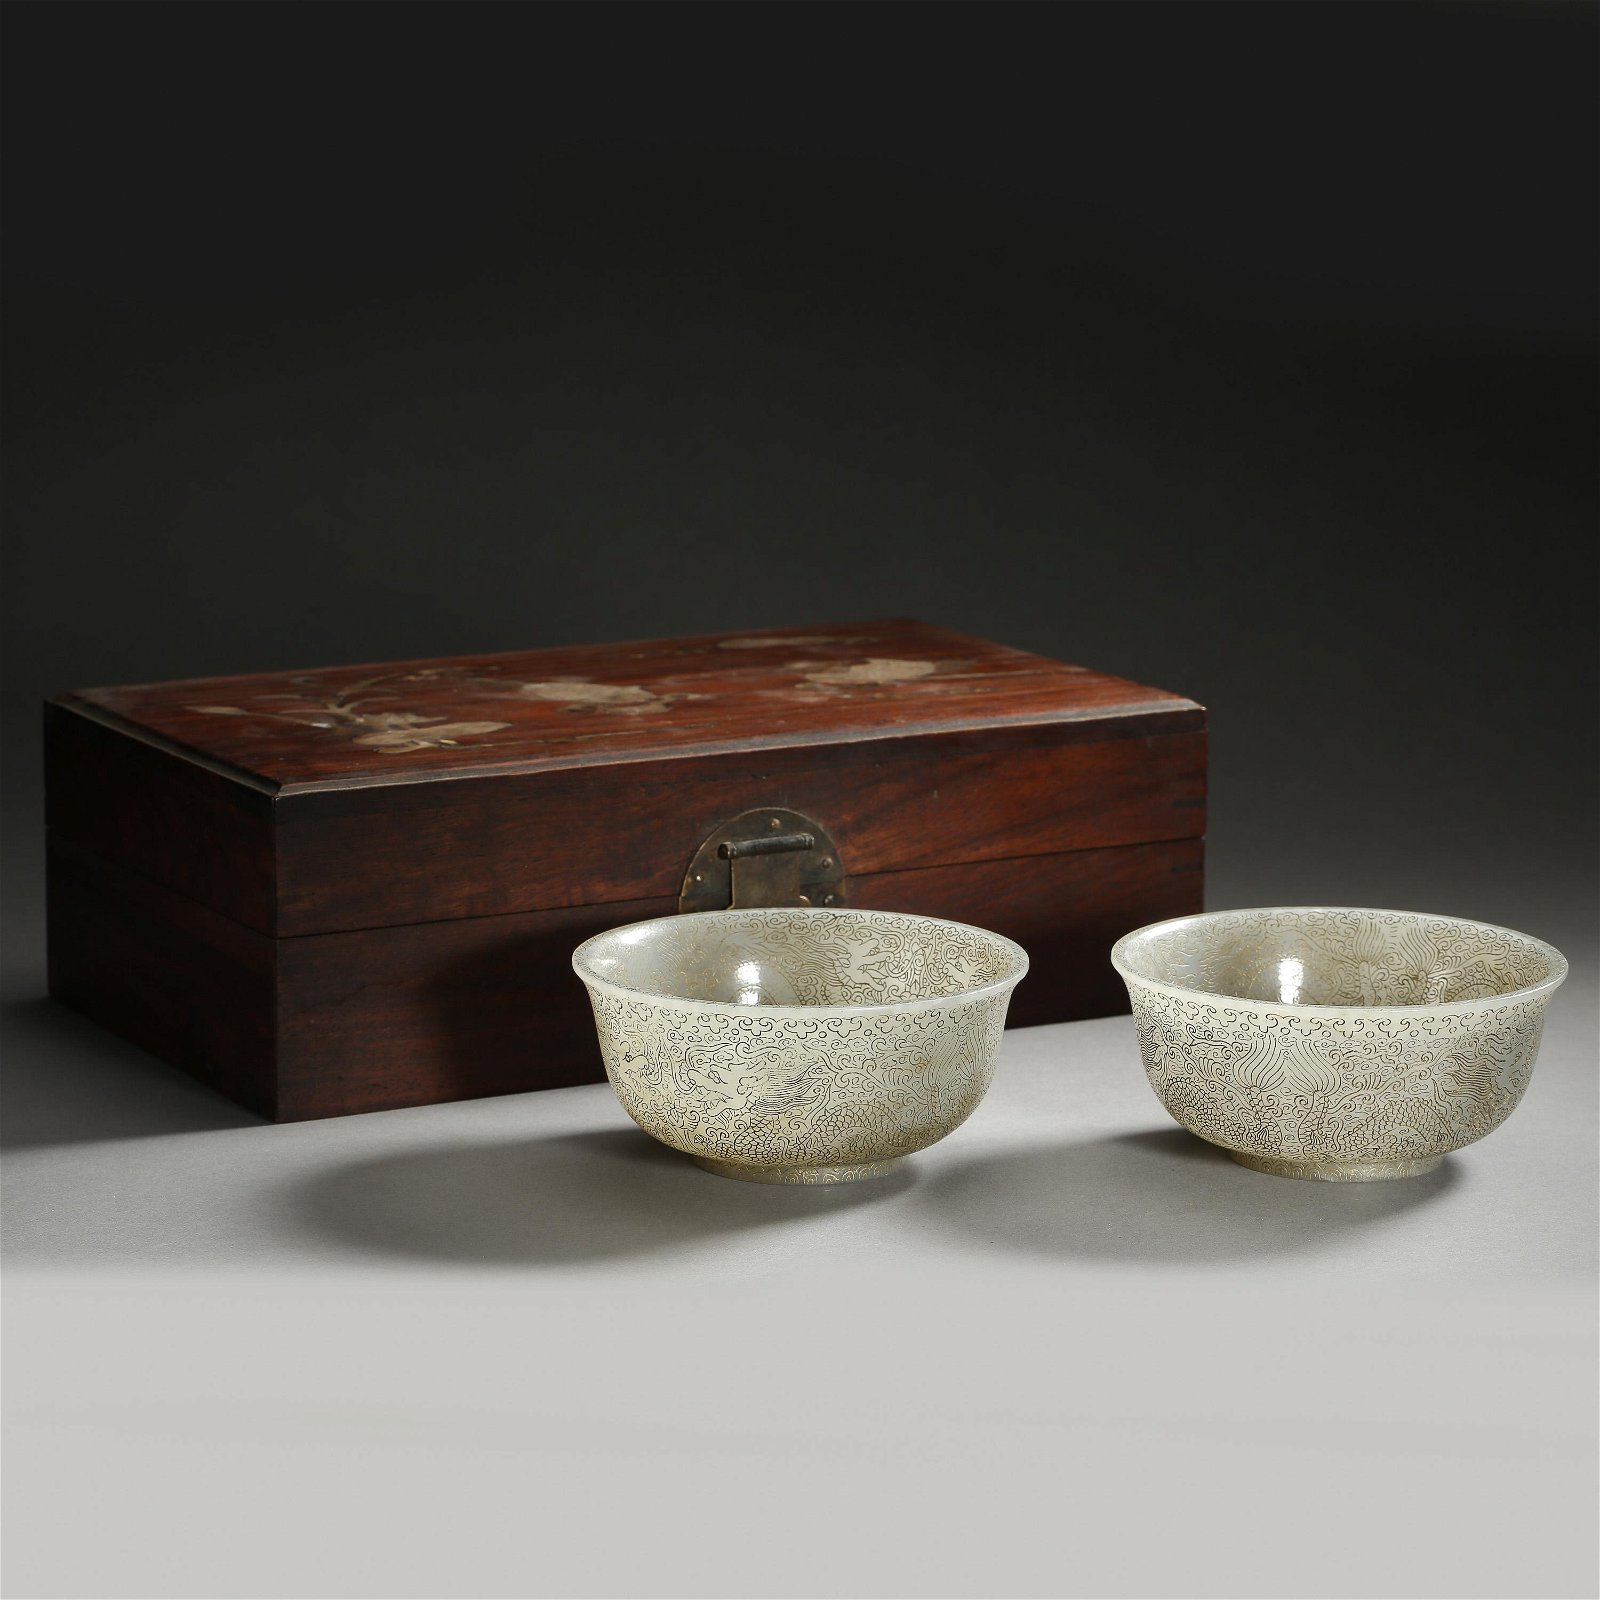 A PAIR OF ANCIENT CHINESE HETIAN JADE (NEPHRITE) BOWLS